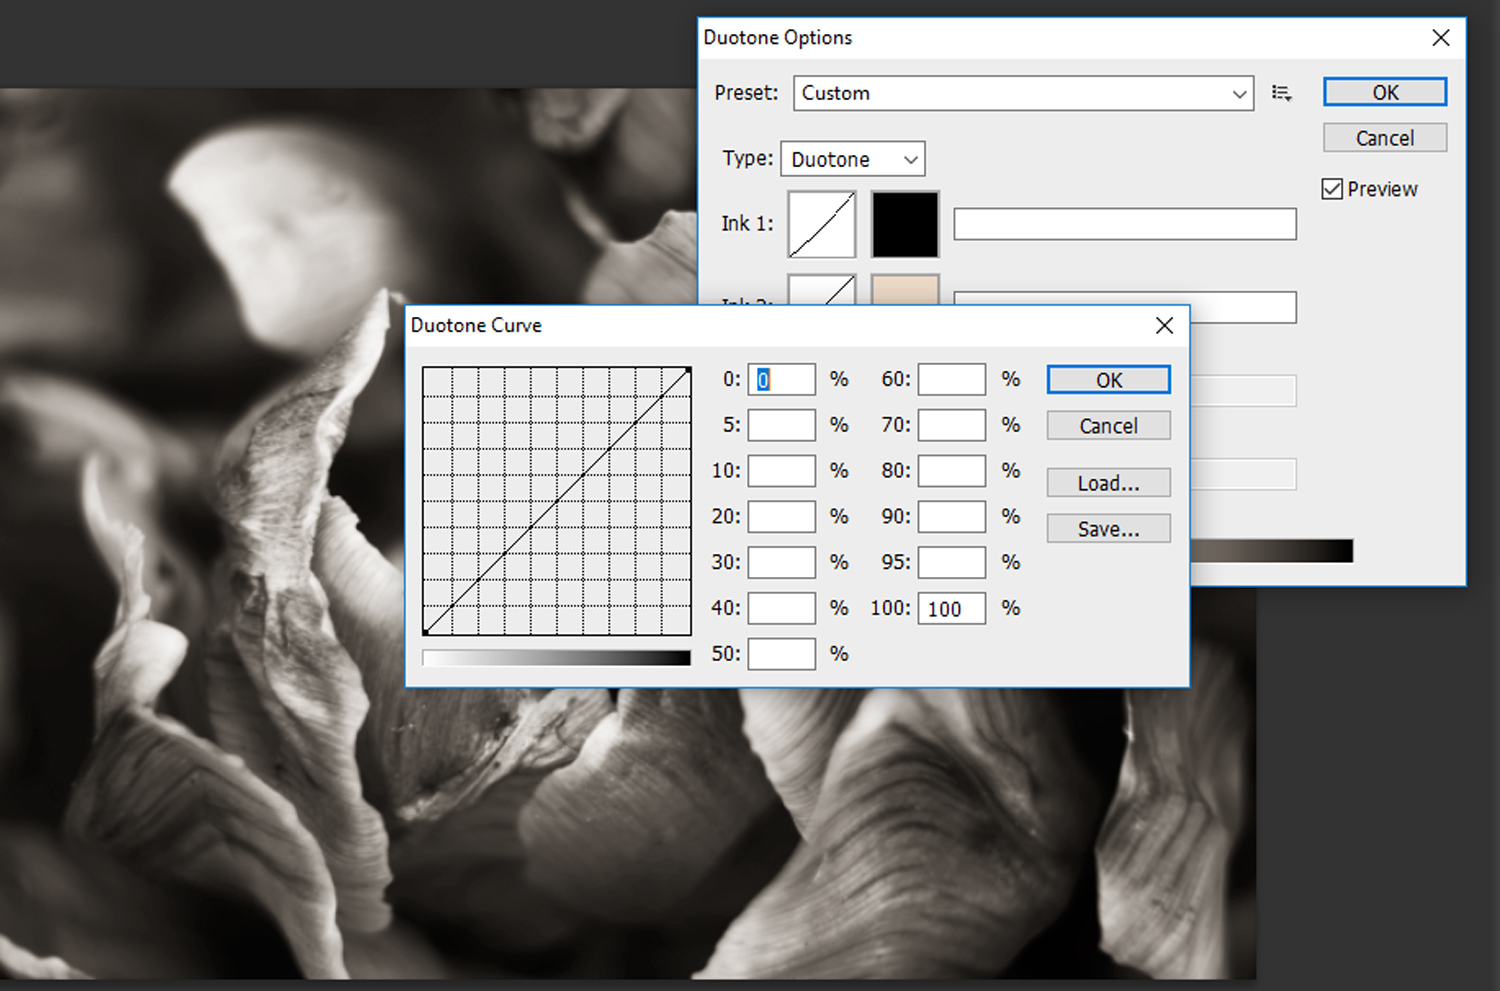 15 - How to Duotone a Photograph in Photoshop